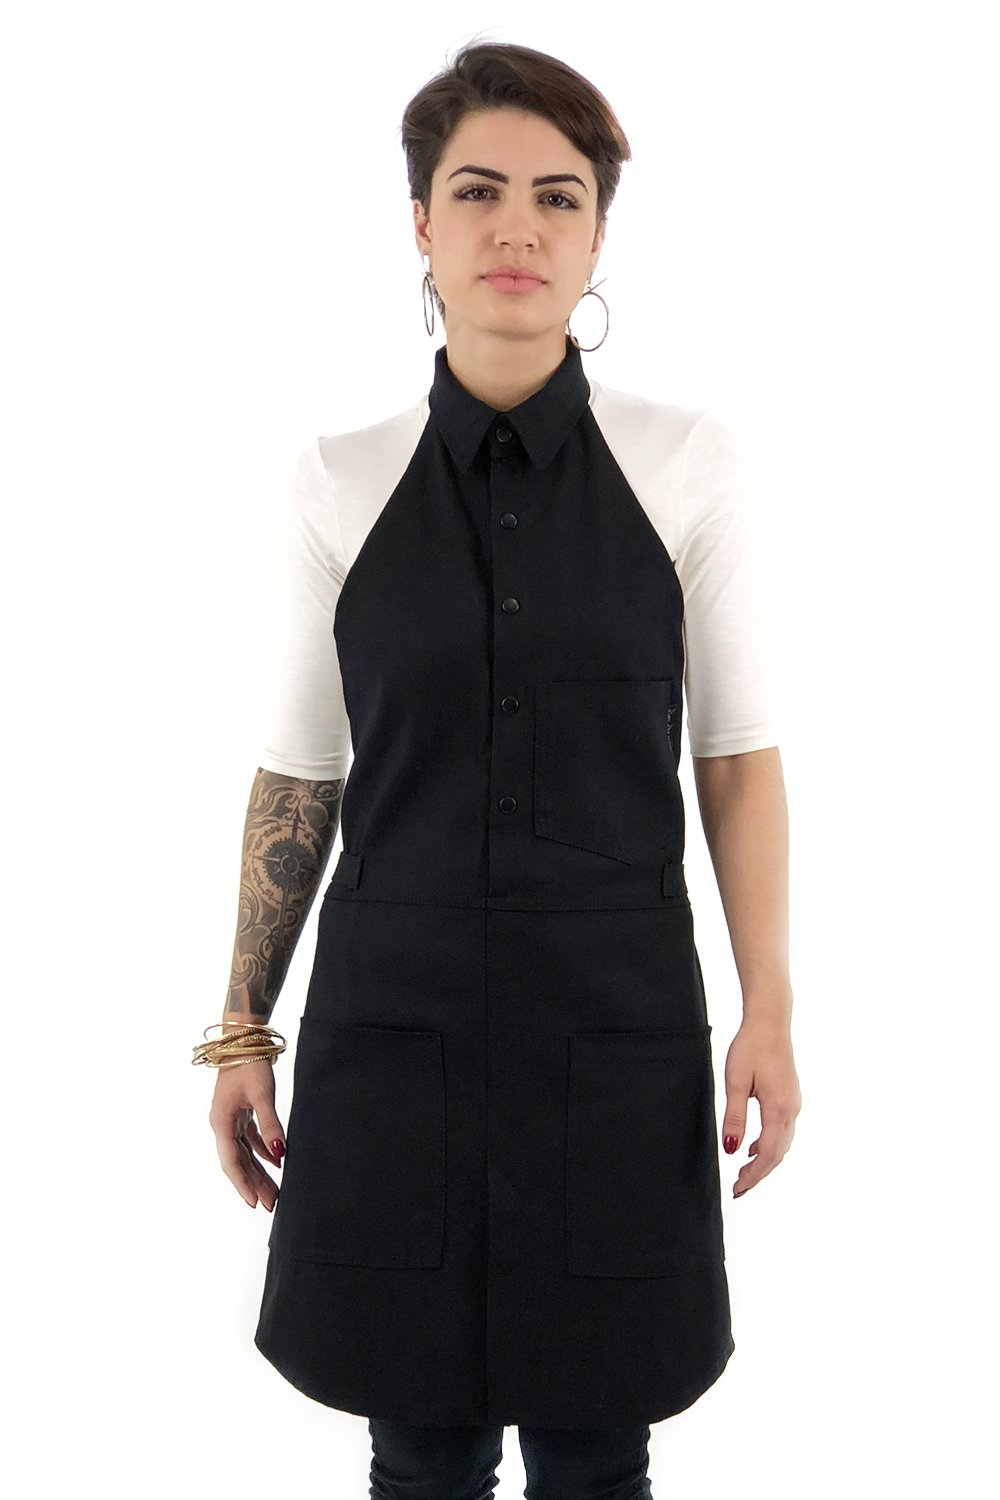 Under NY Sky Button-Down Fine Black Apron – Durable Twill and Split-Leg – Adjustable for Men and Women – Pro Cook, Barista, Mixologist, Bartender, Cobbler, Server Aprons – Small Size